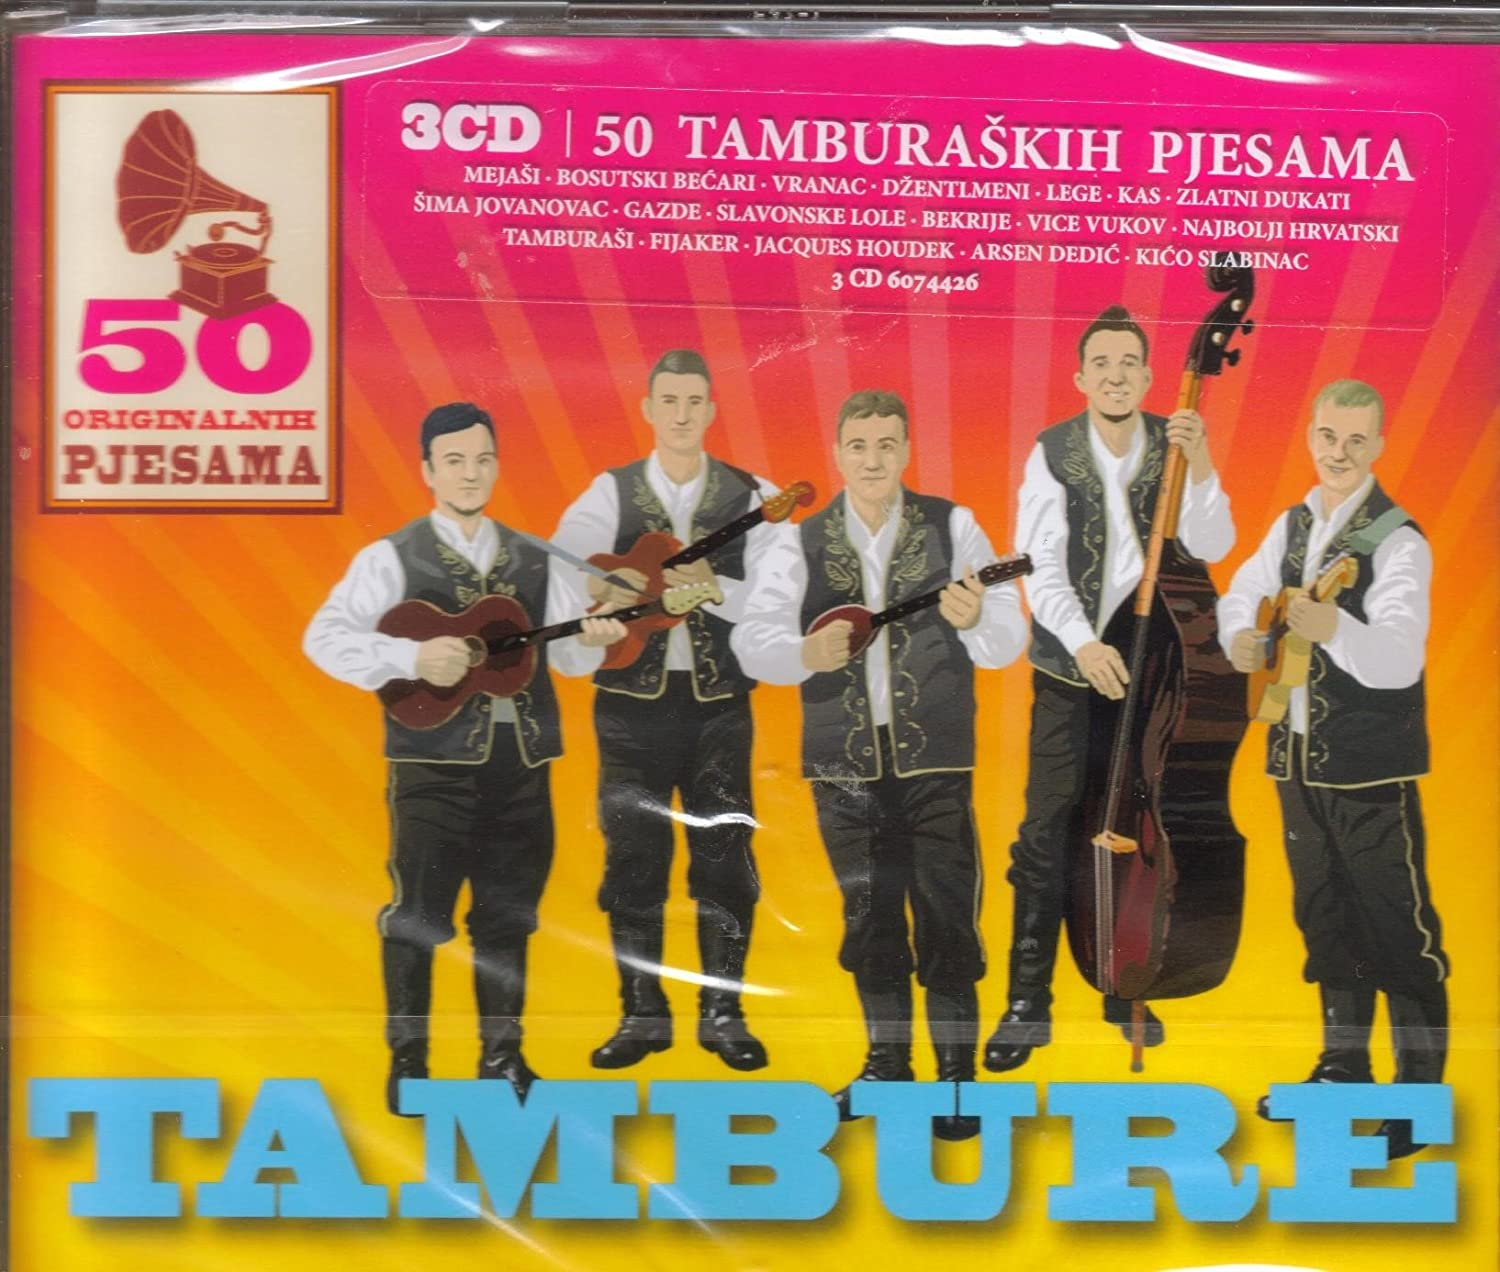 Various Artists 50 Originalnih Pjesama Tambure Amazon